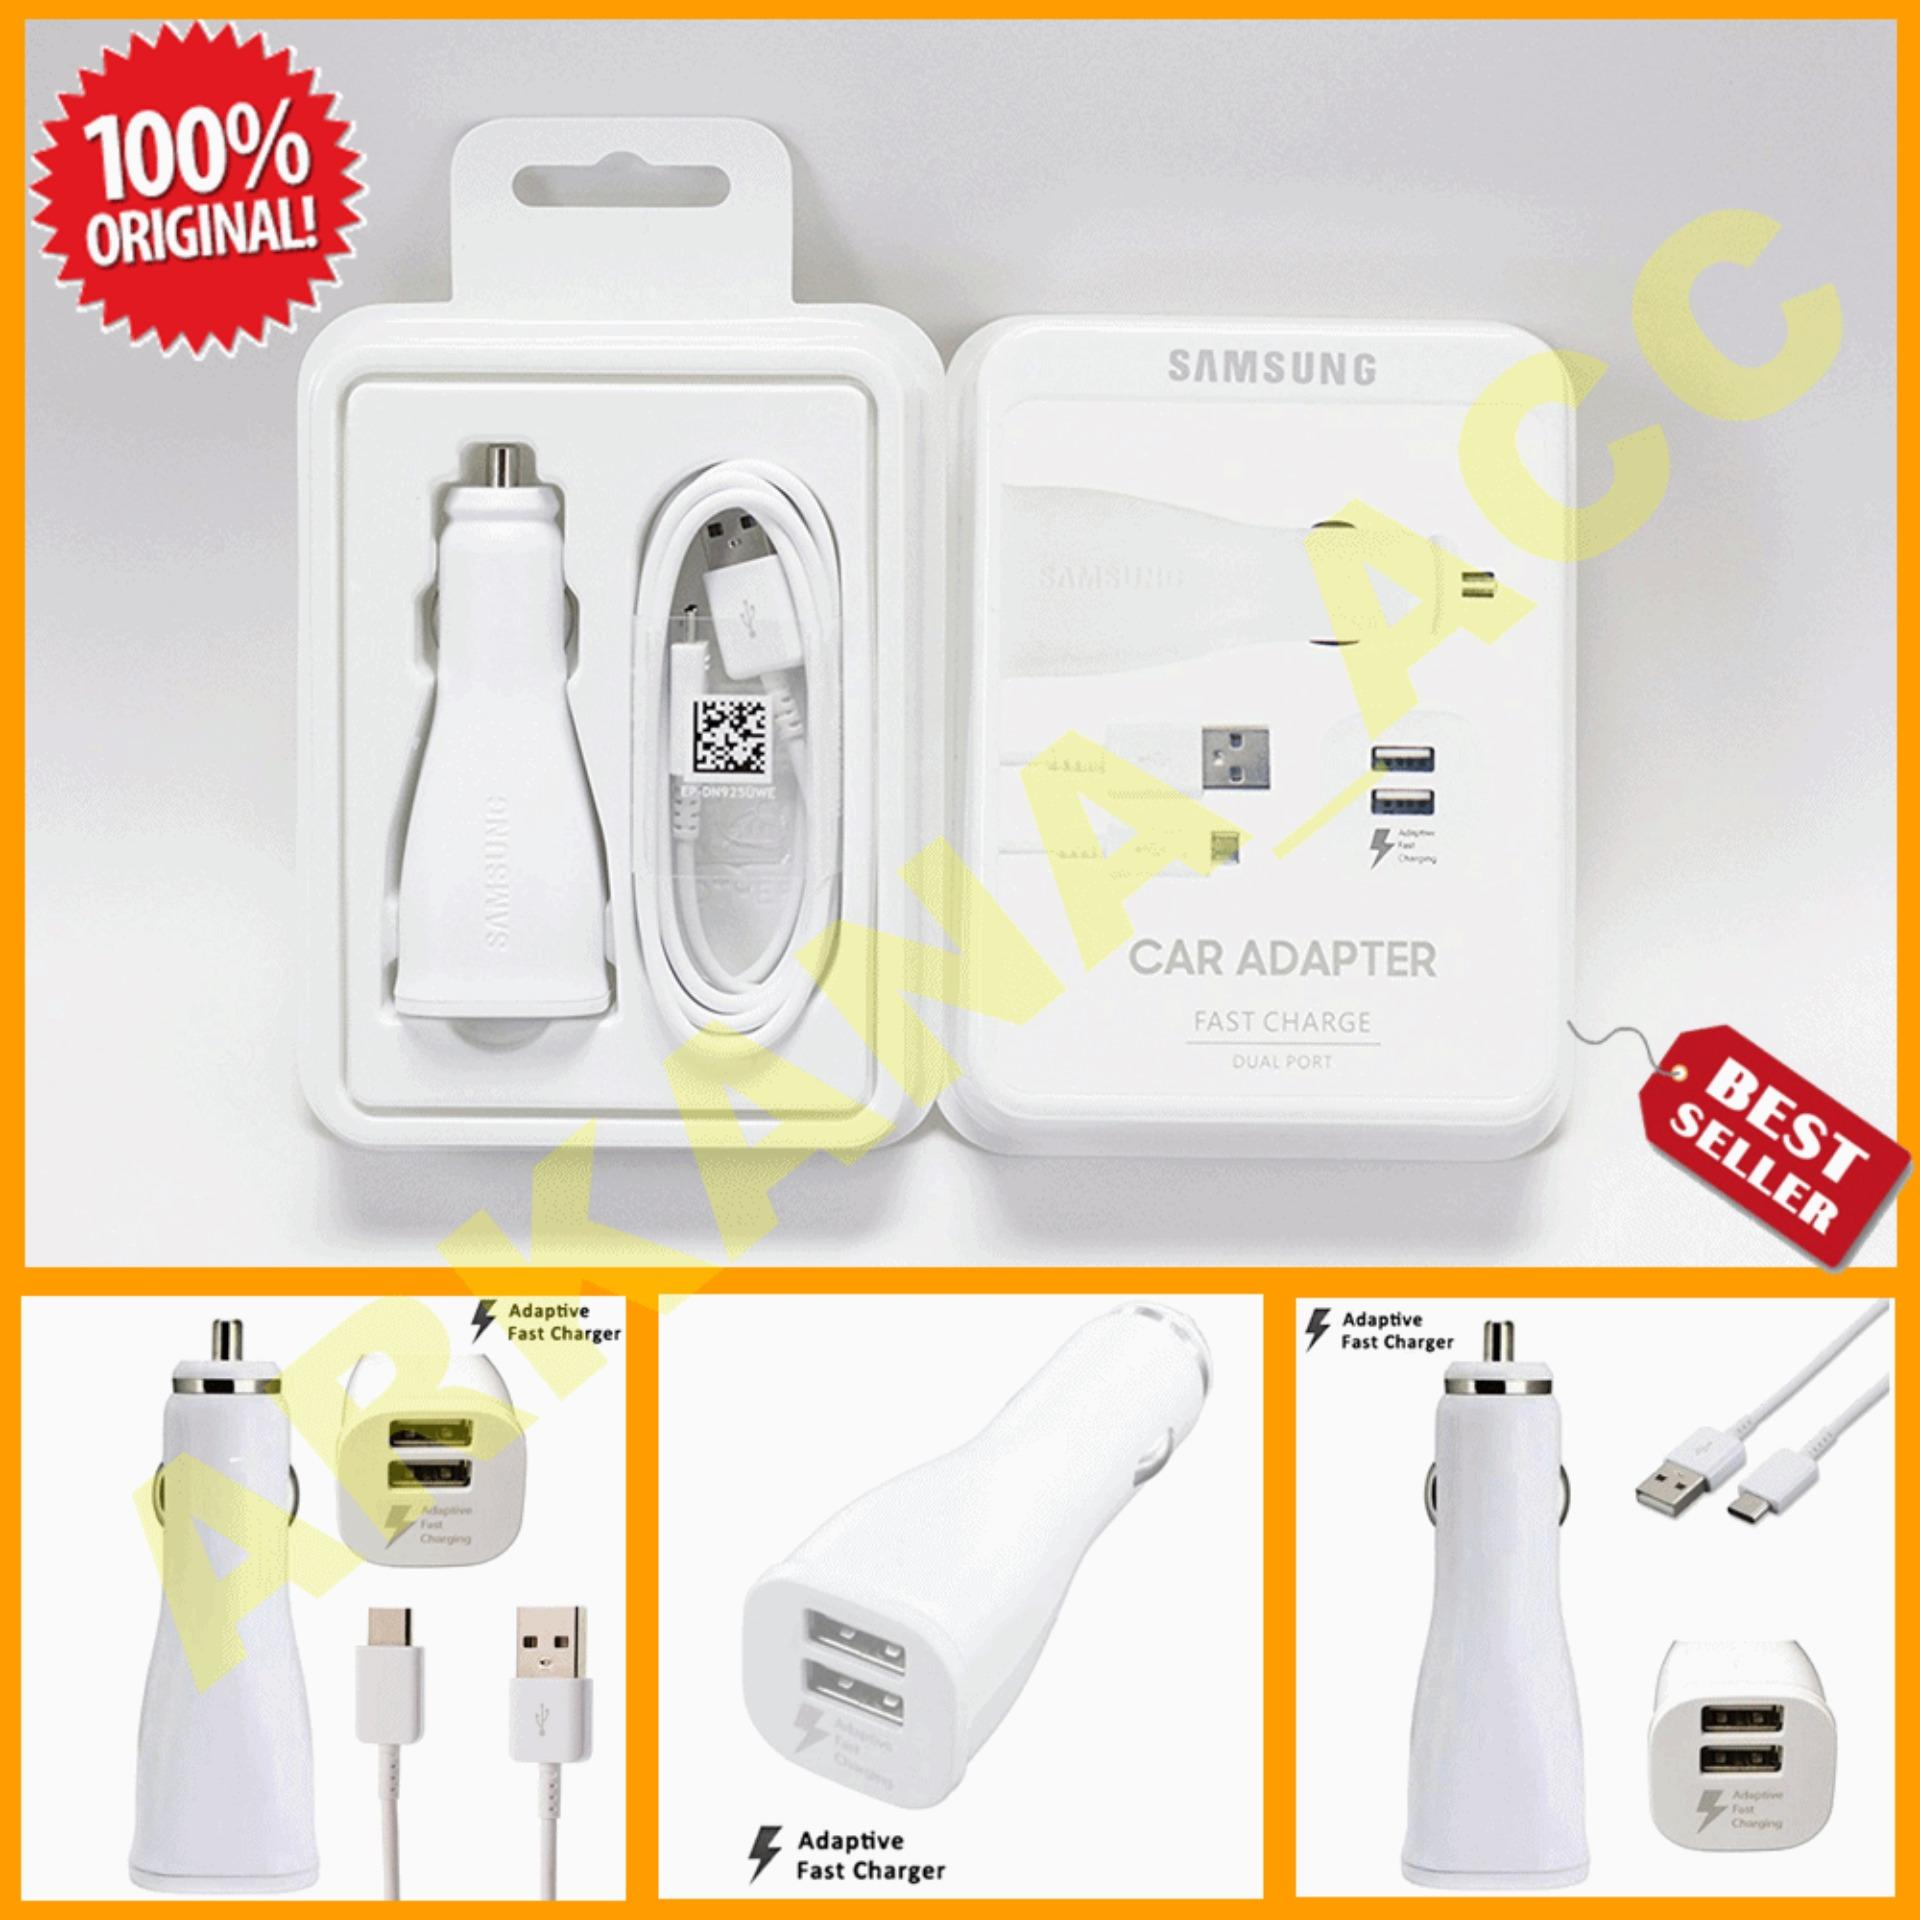 Hot Deals Samsung Car Charger Fast Charging Dual Usb Mobil Convertible Wireless Original Hitam New Generation